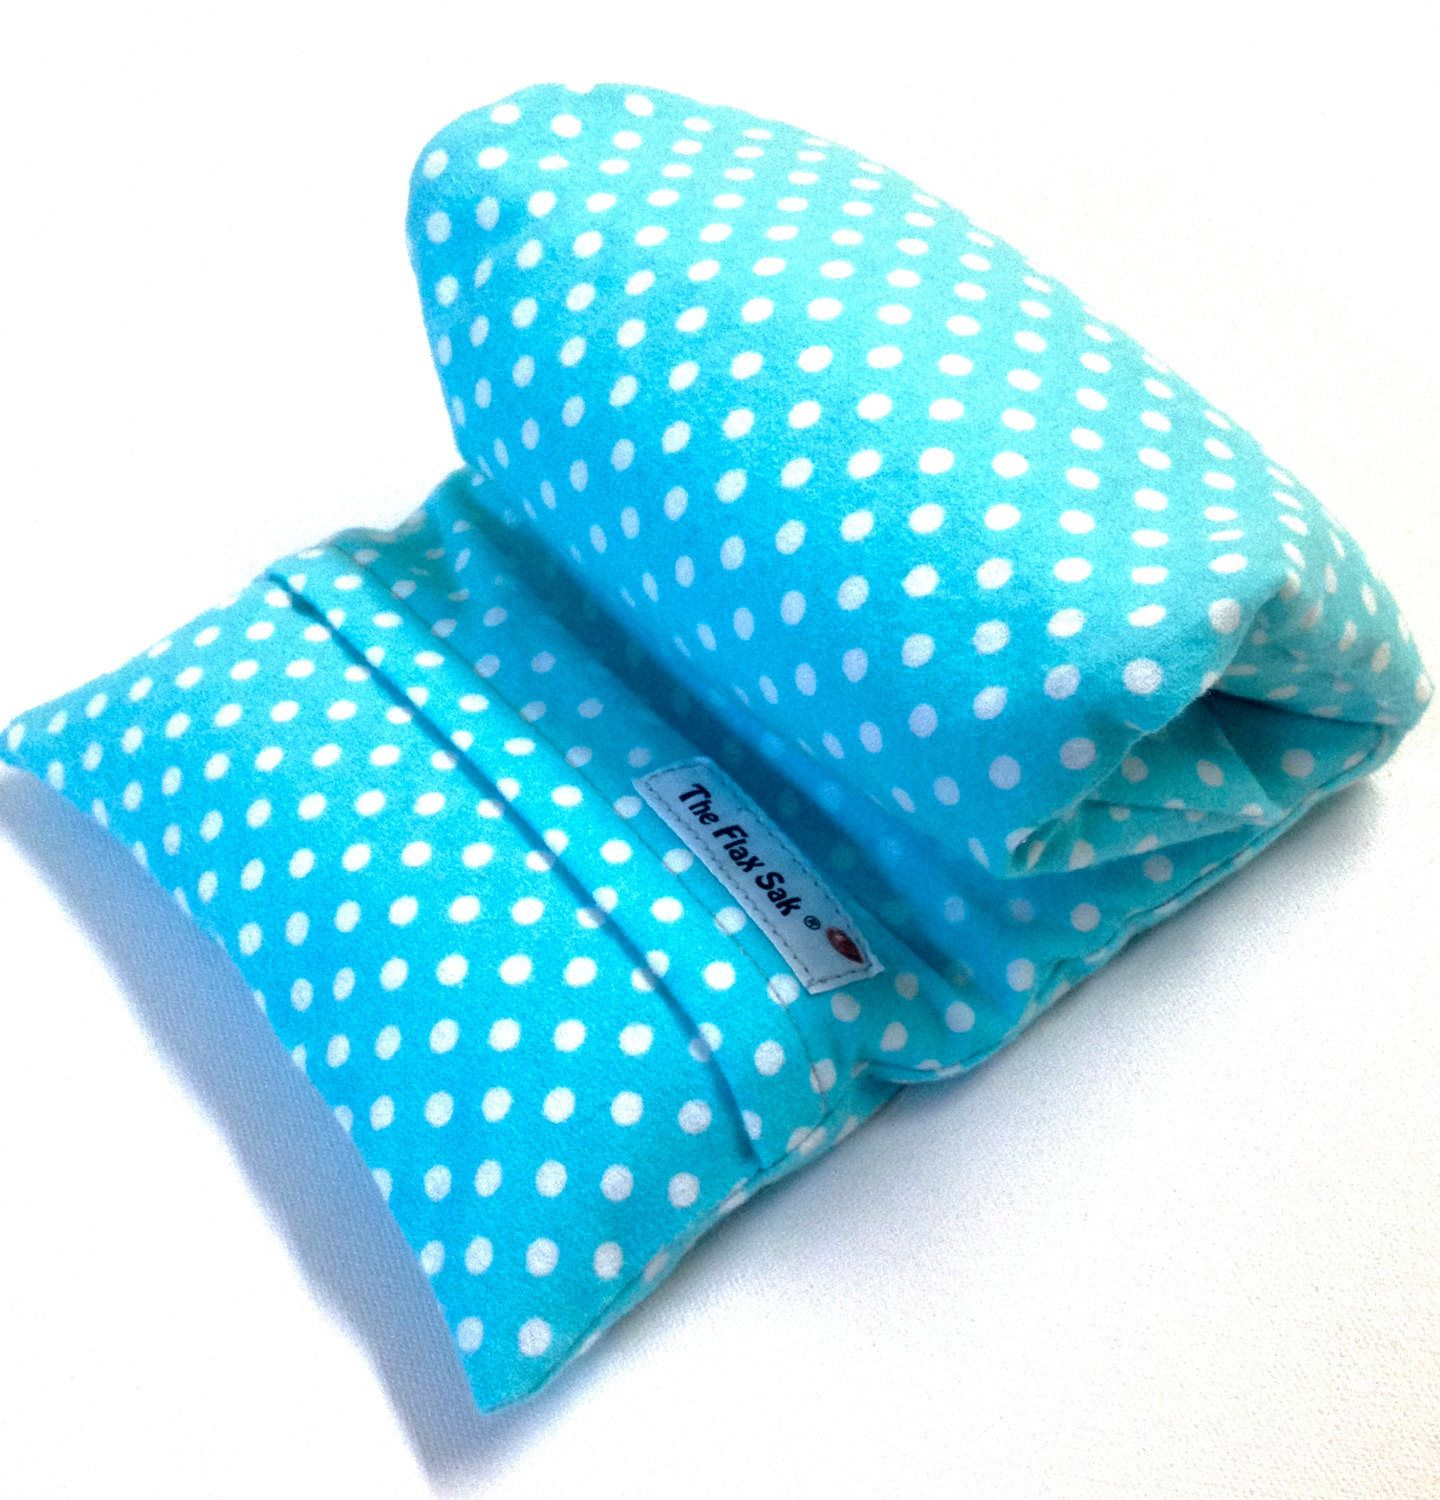 Joint Pain Injuries Microwavable Flax Seed Lavender Heating Pad or Cold Pack for Aches Cramps